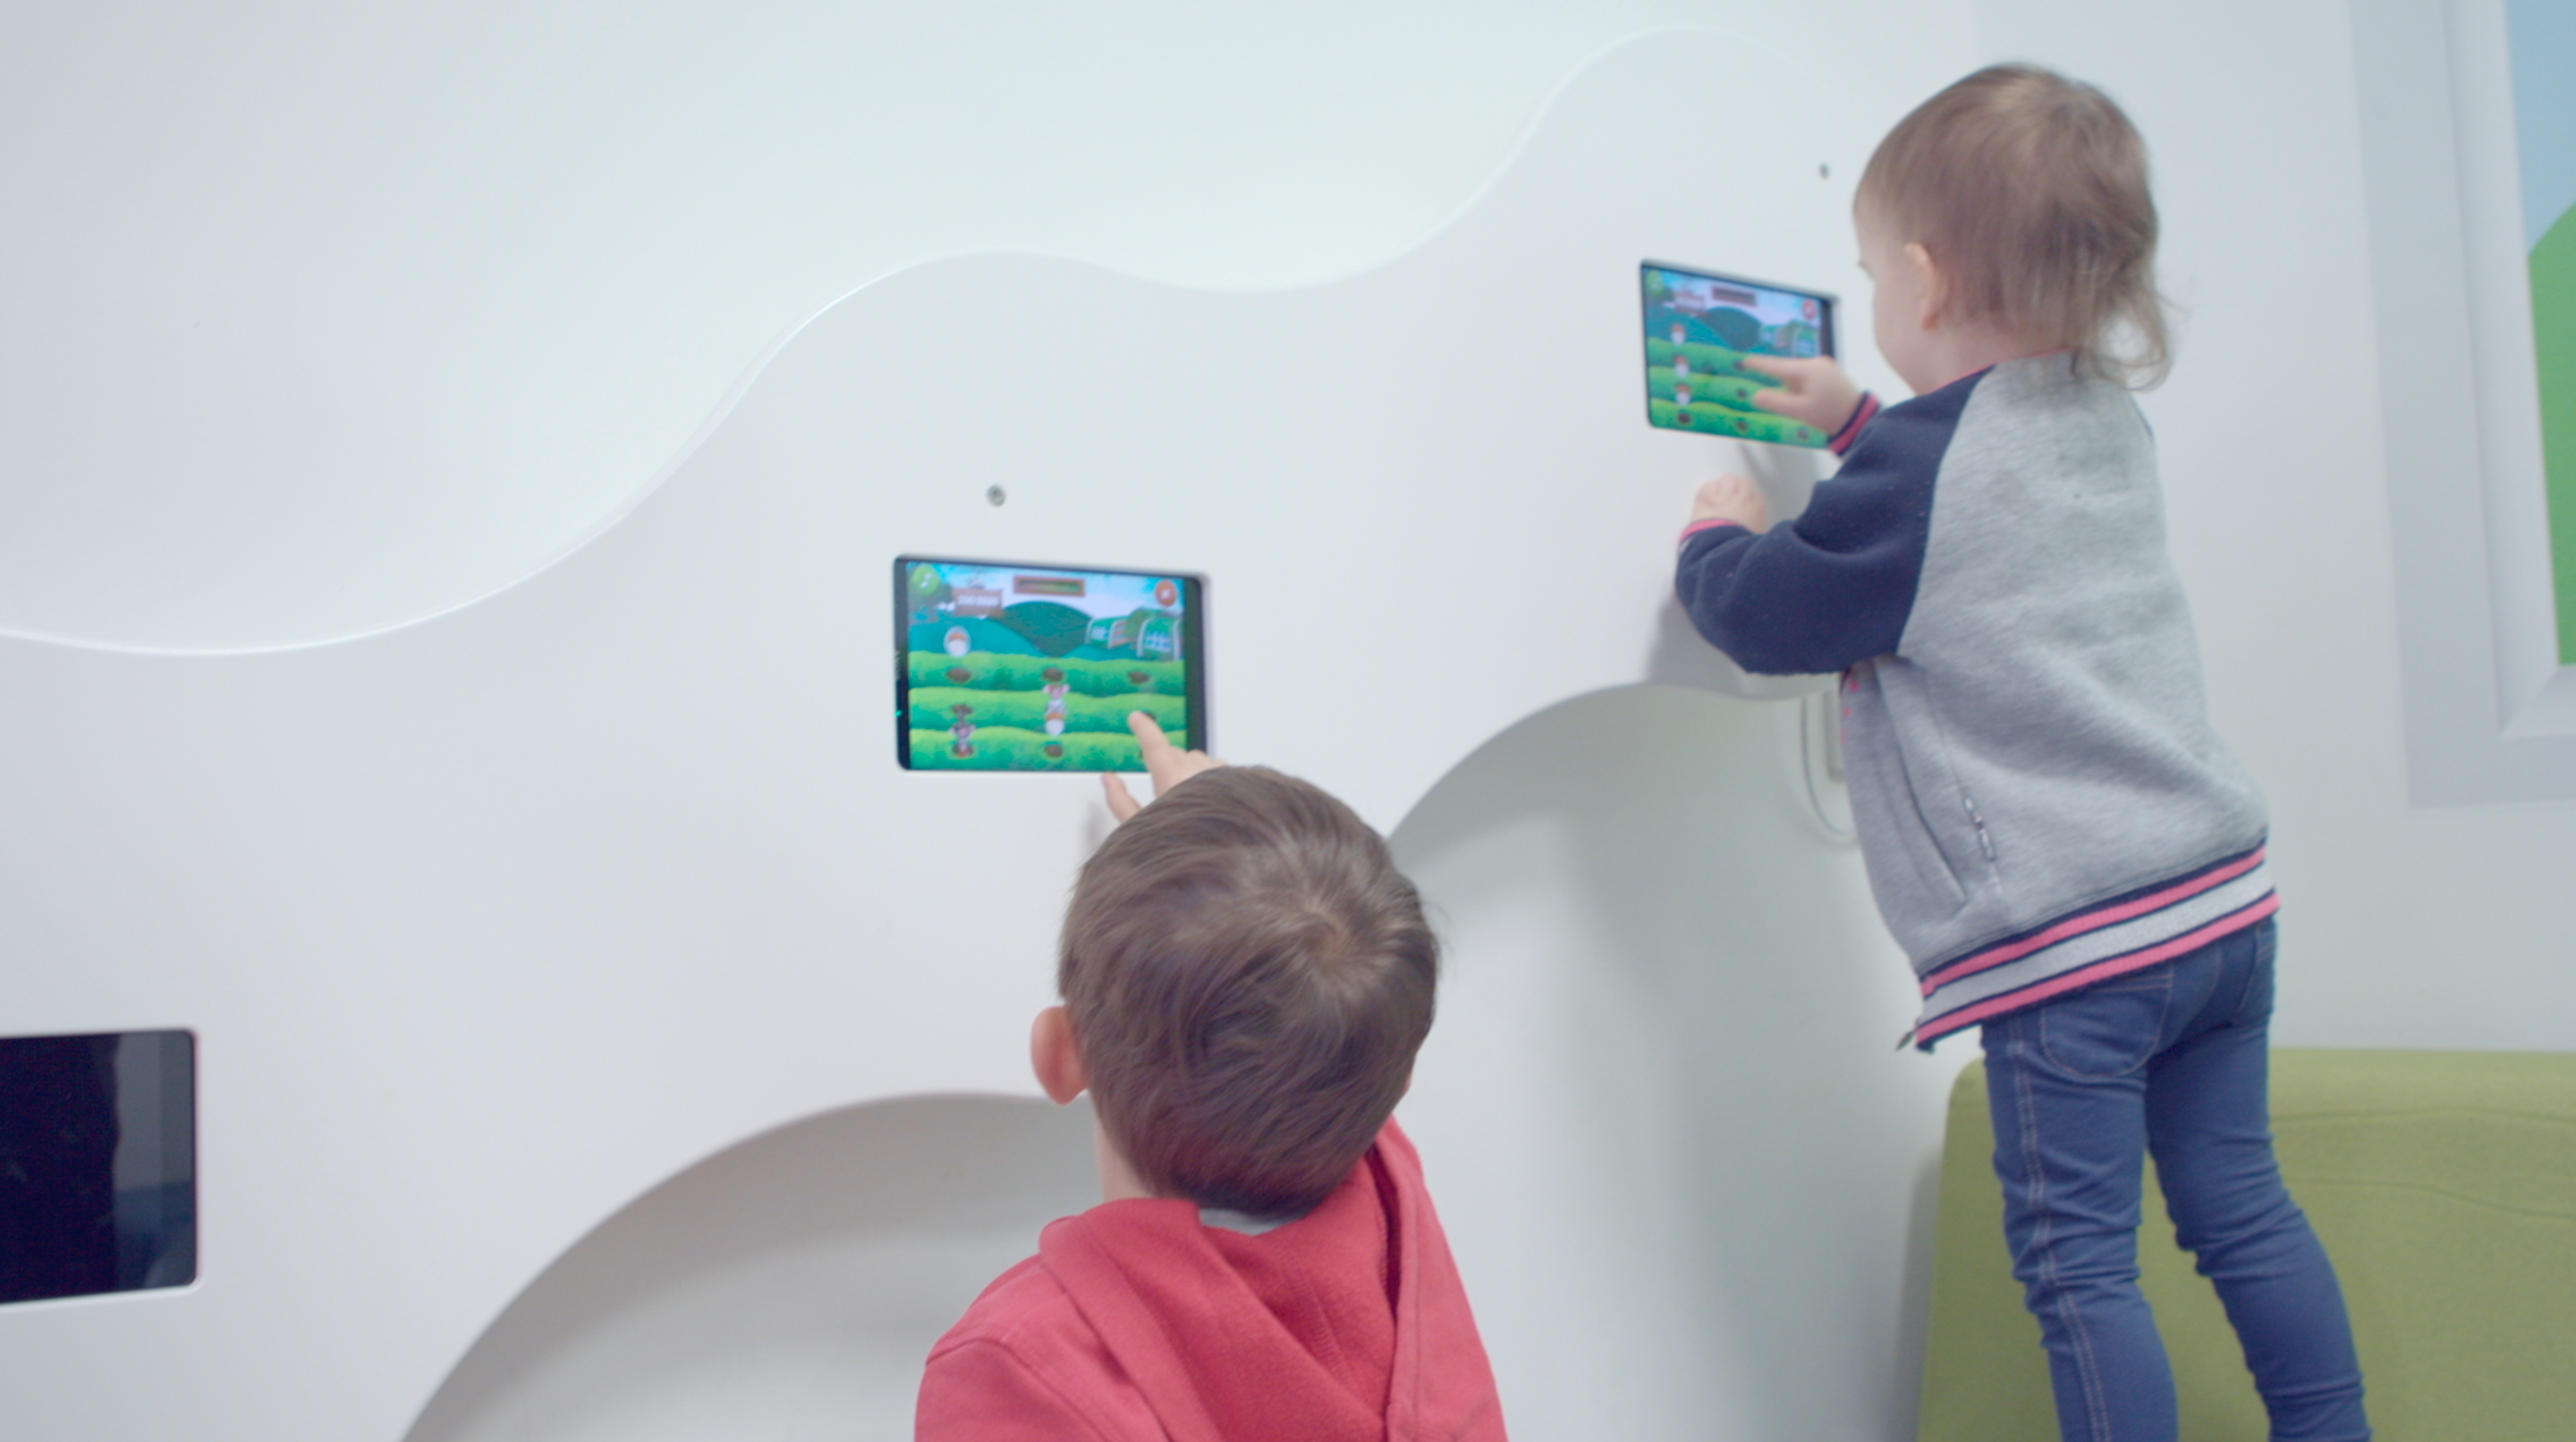 Small Touchscreen Games for all ages